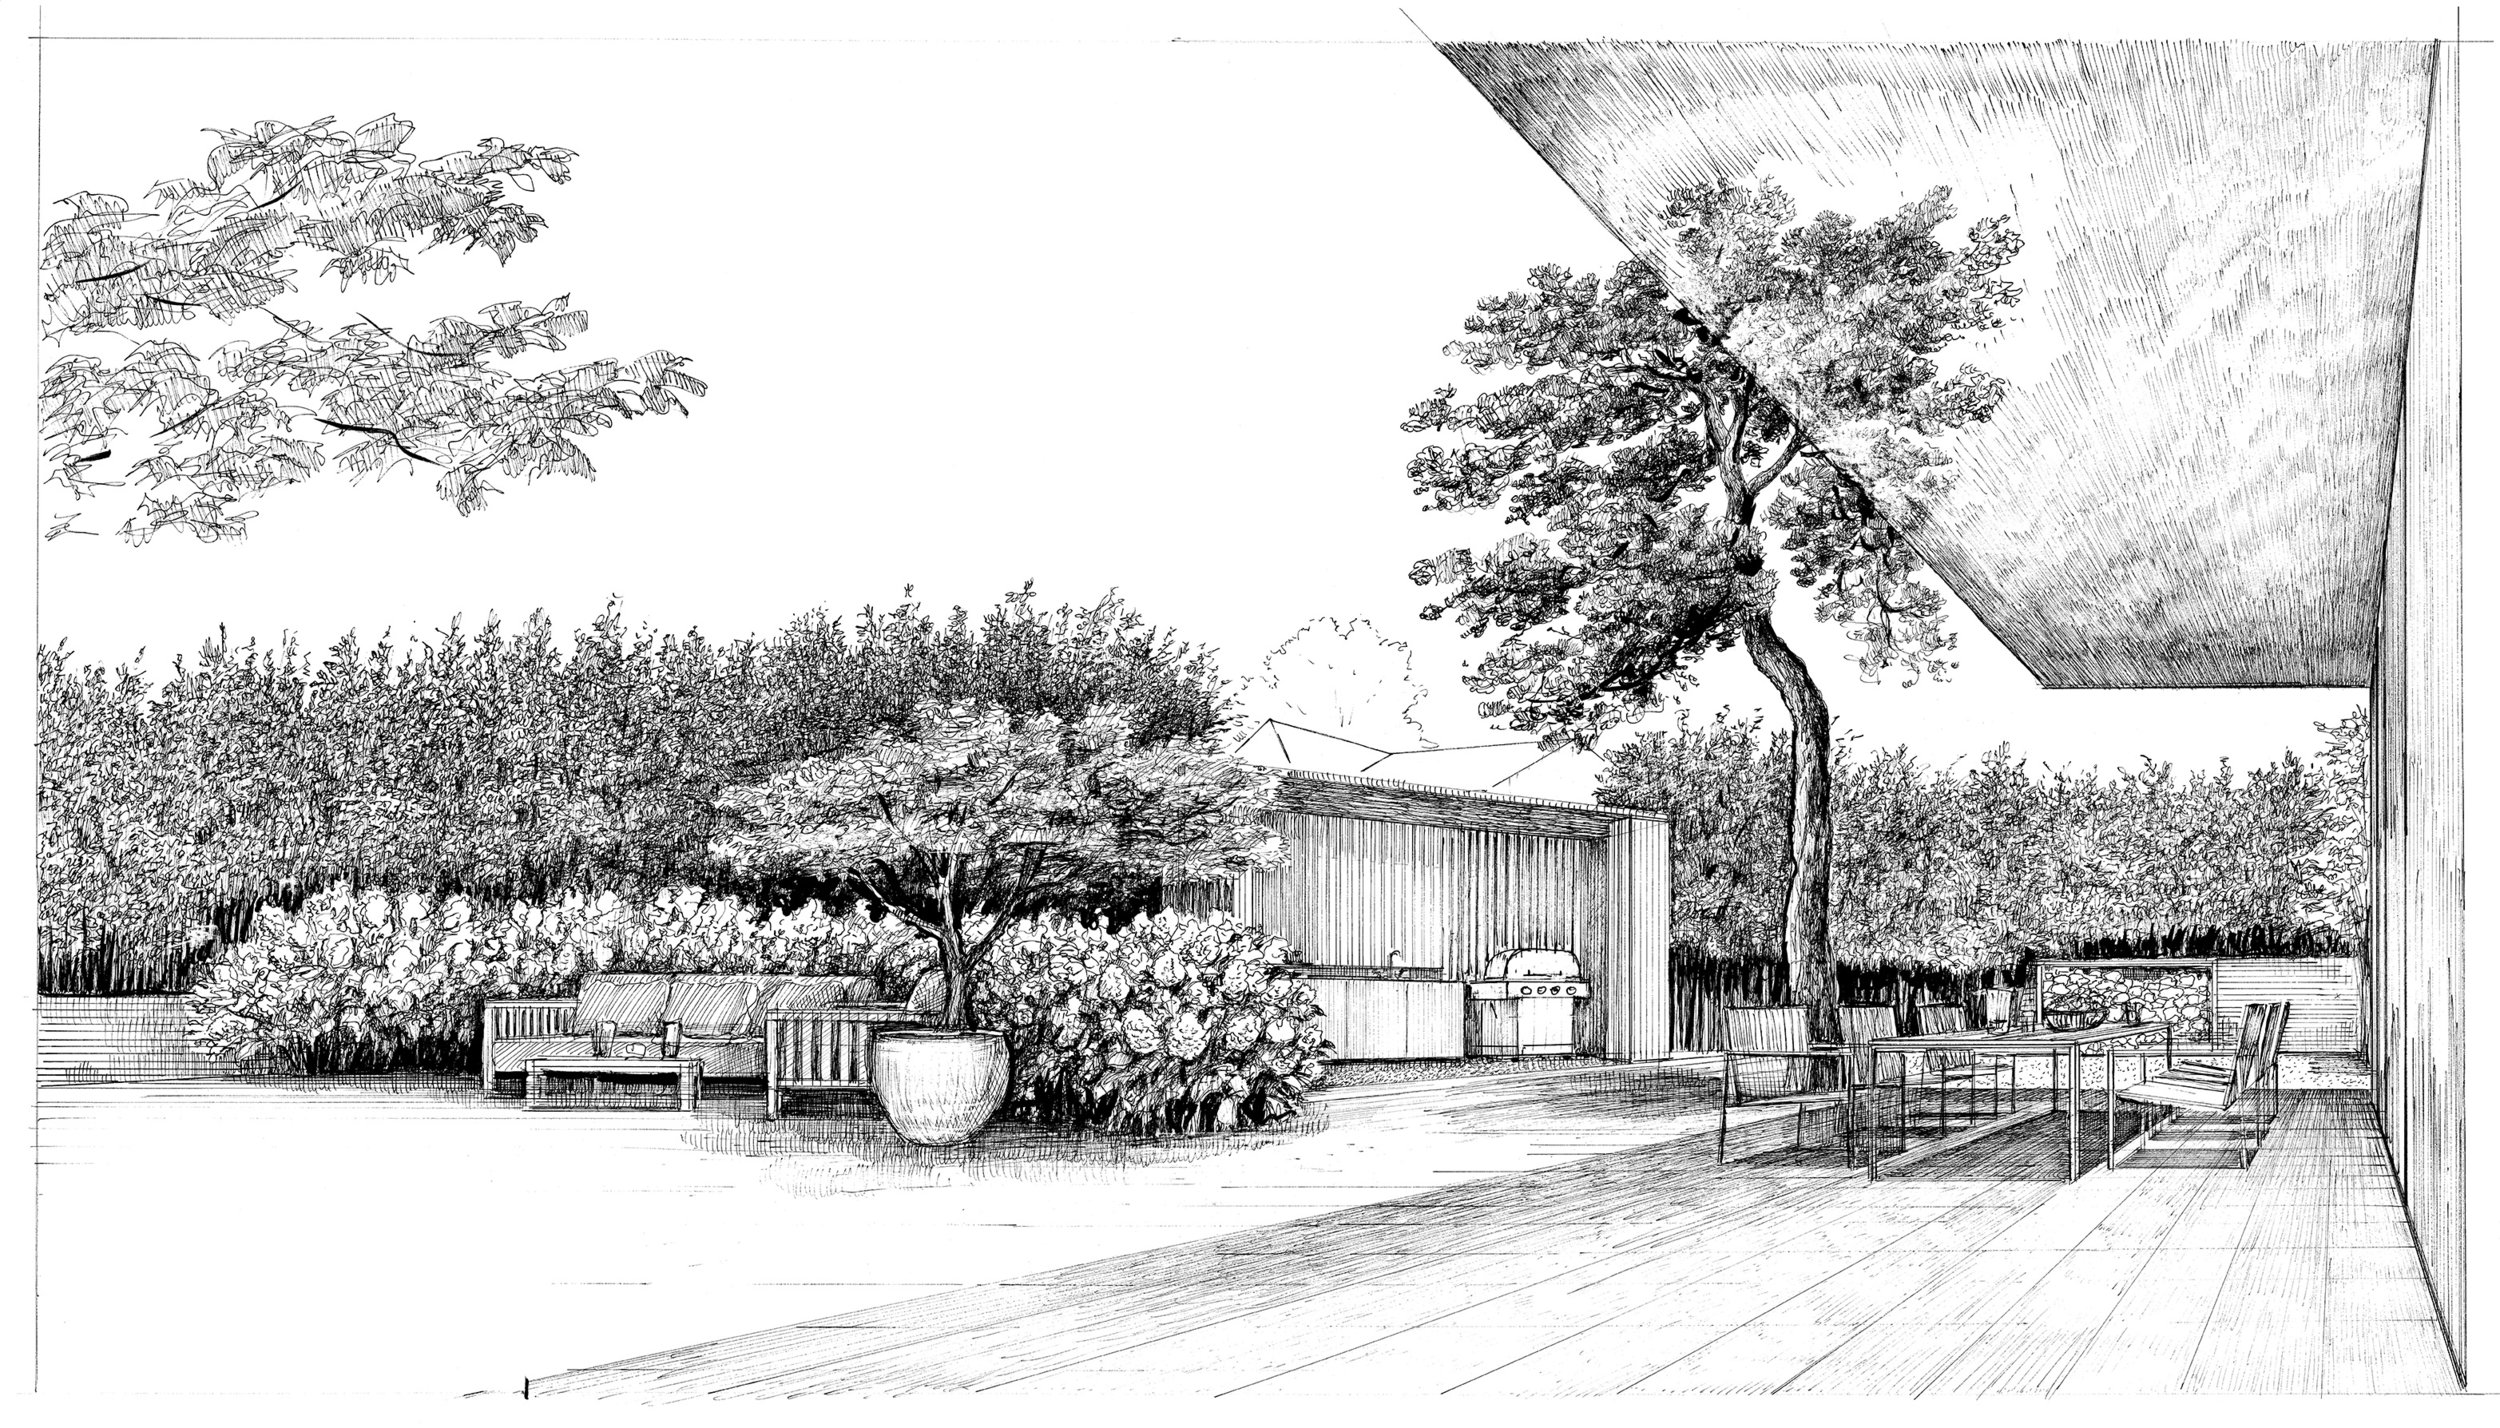 outdoor lounge and kitchen view (drawn by Bruno Moser / enea landscape architecture)